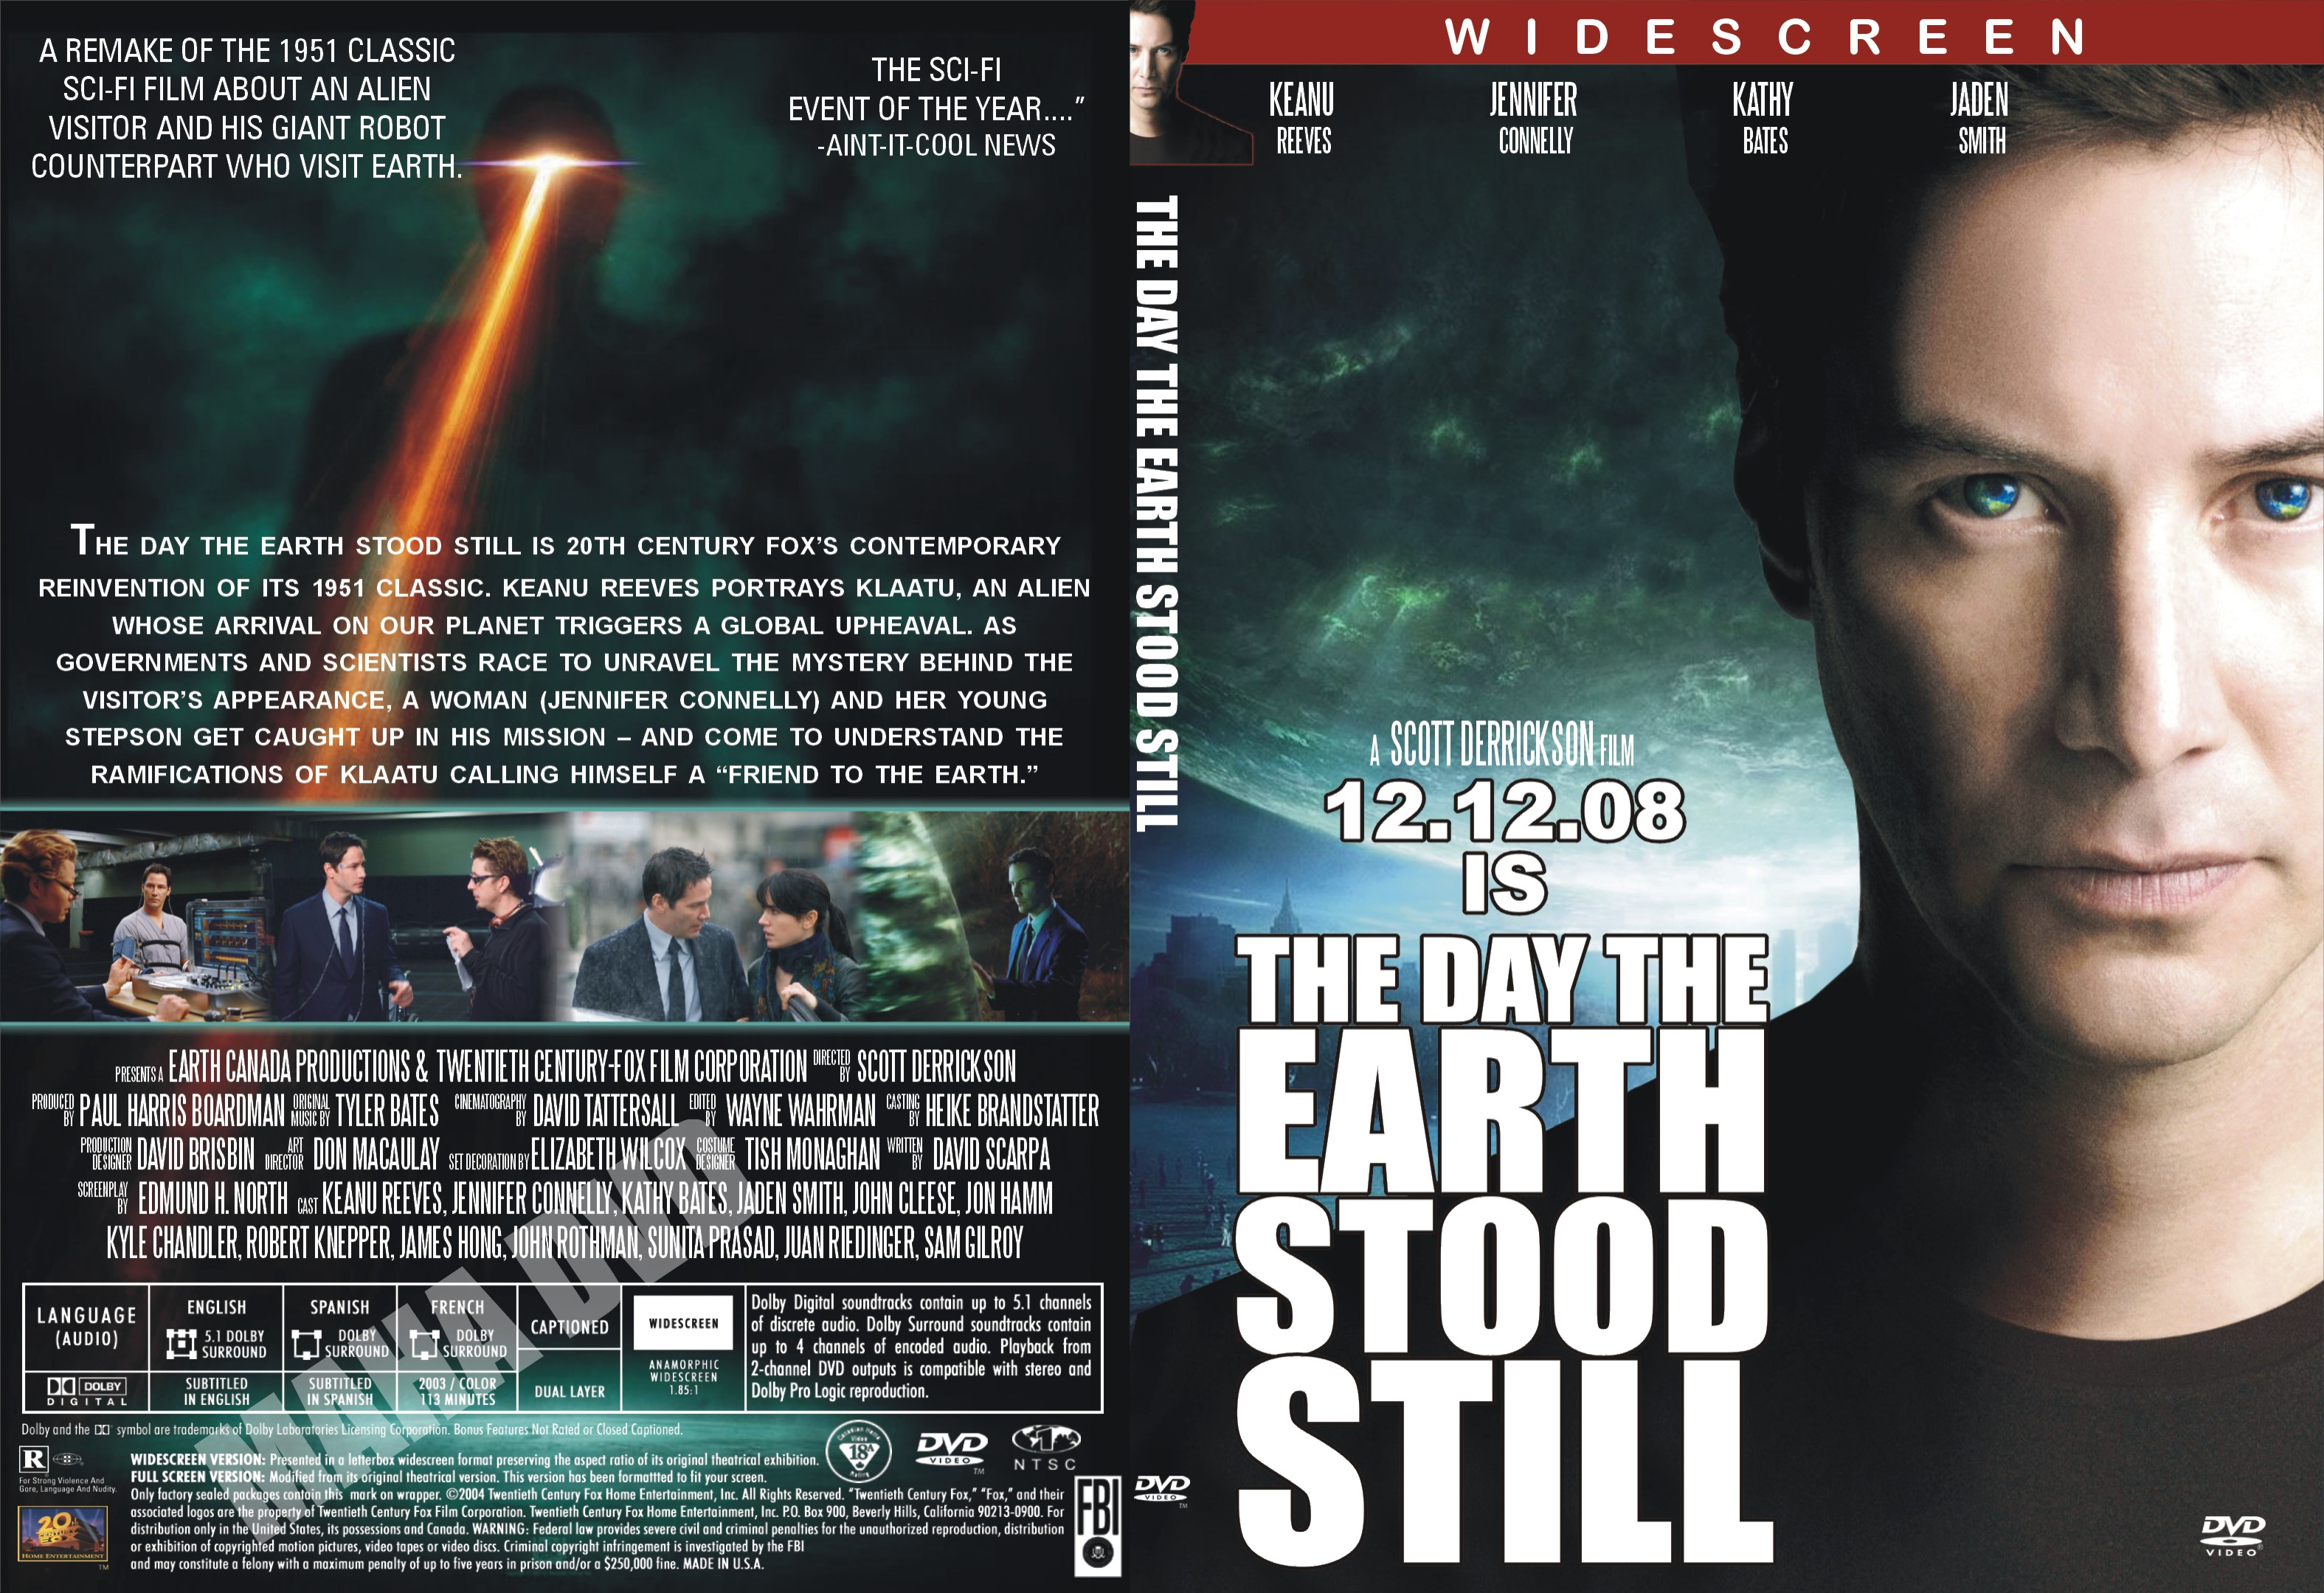 The Day The Earth Stood Still 2008 Wallpapers Movie Hq The Day The Earth Stood Still 2008 Pictures 4k Wallpapers 2019